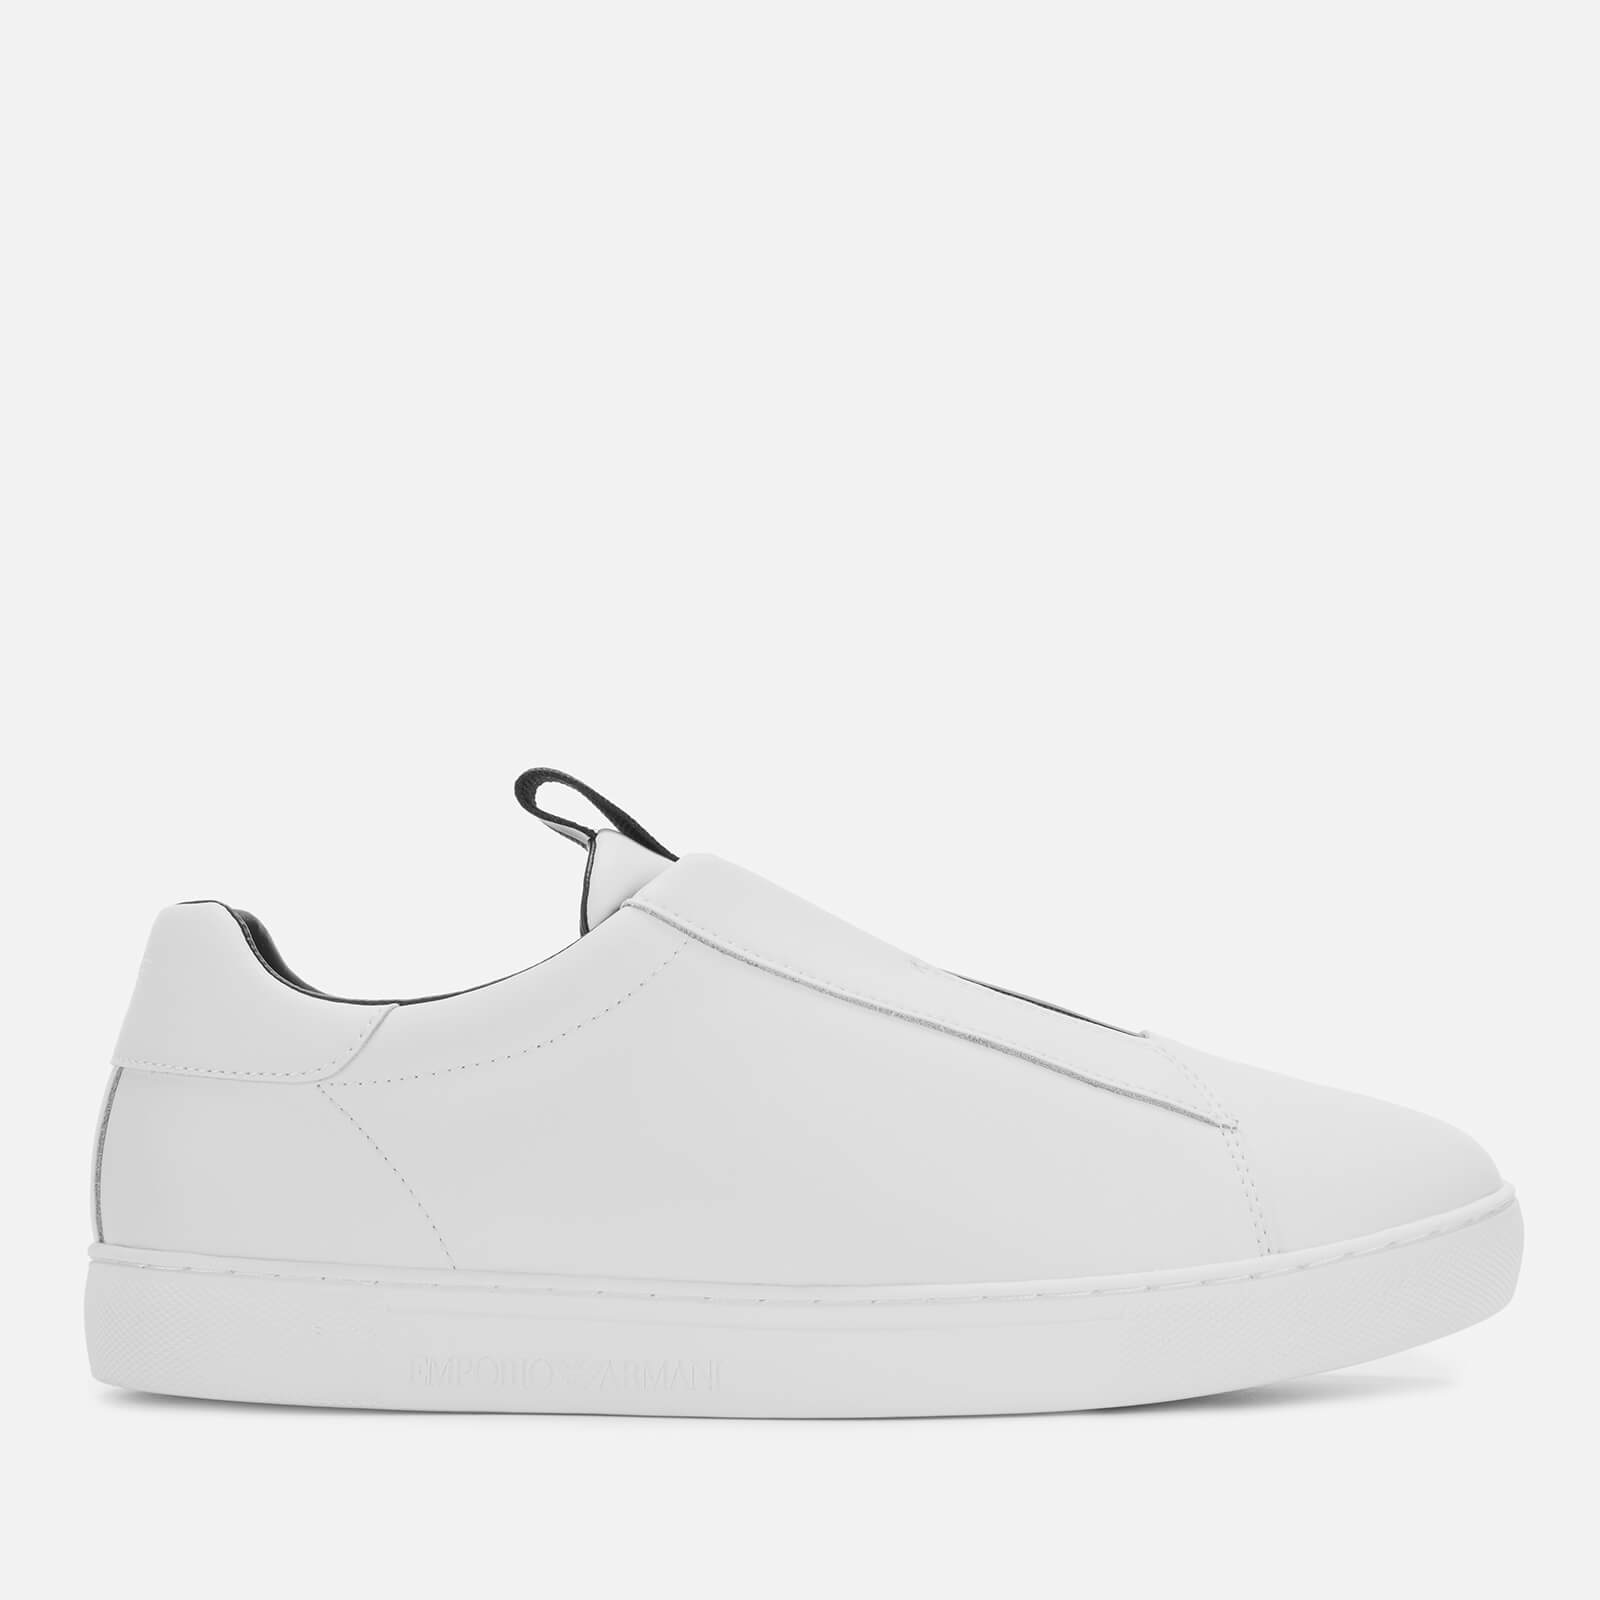 no sale tax on feet images of no sale tax Emporio Armani Men's Stan Leather Slip-On Trainers - White/Black/White